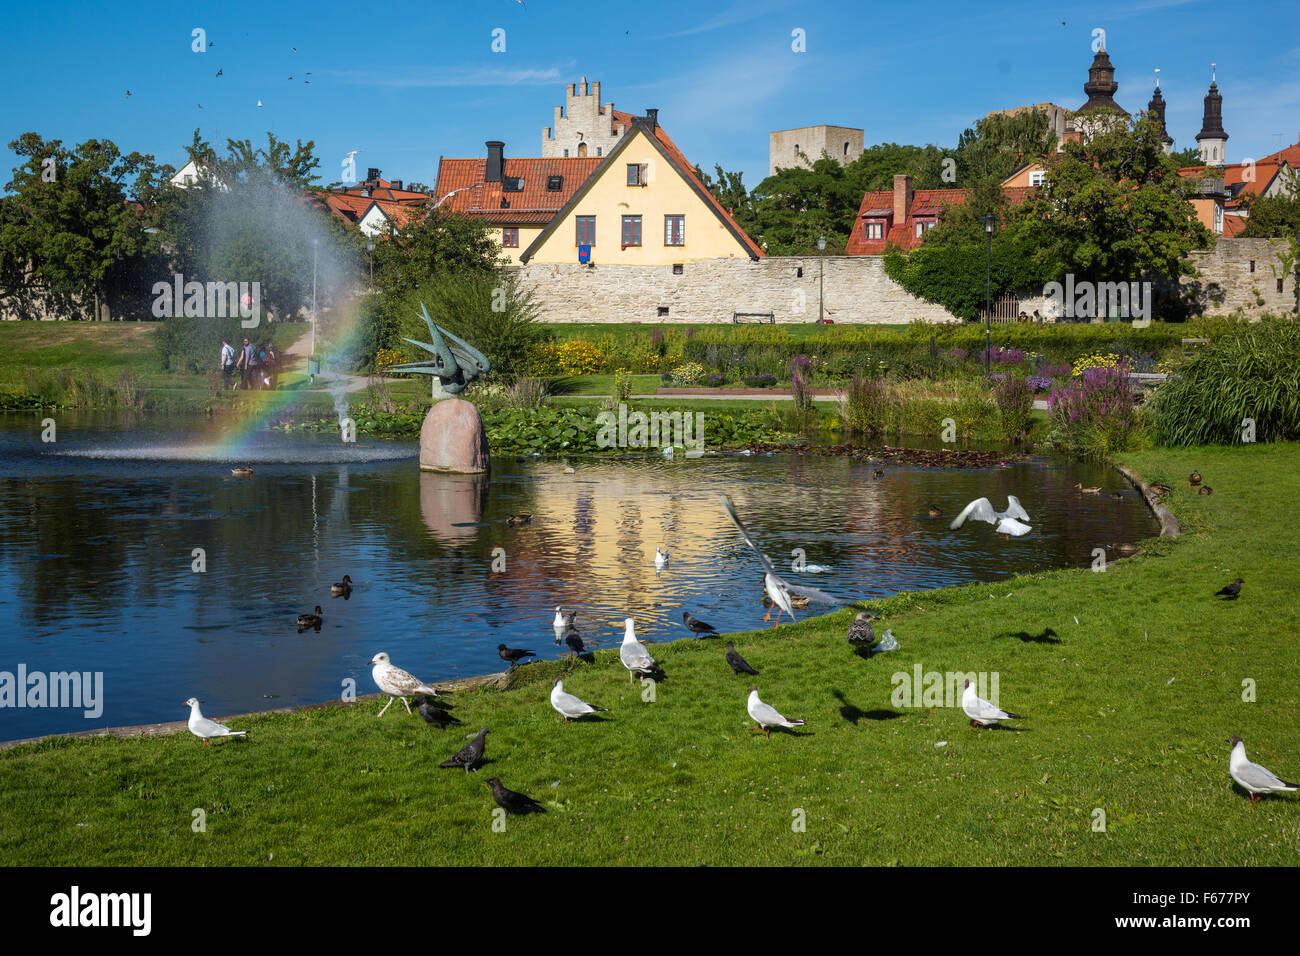 Visby, the medieval city on the Gotland island, Sweden - Stock Image